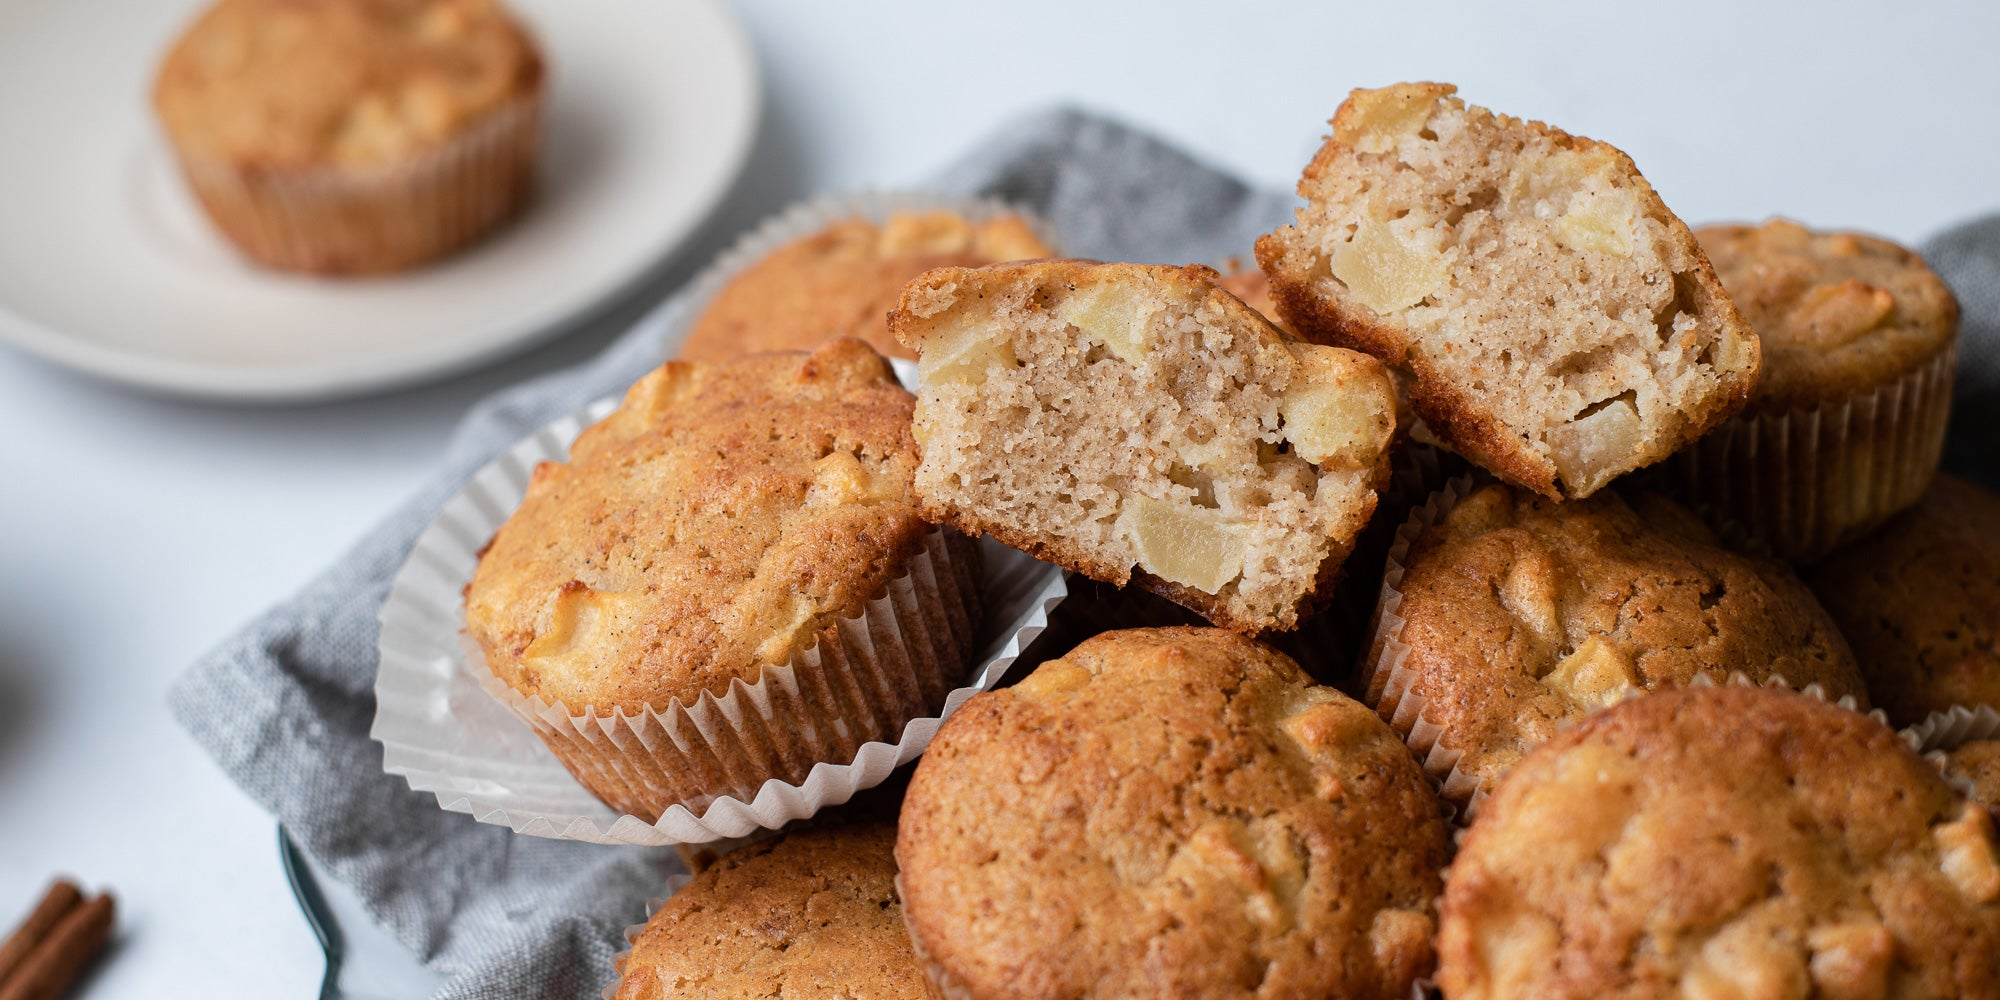 A stack of Calorie Conscious Apple & Cinnamon Muffins, cut open showing the inside of the bake